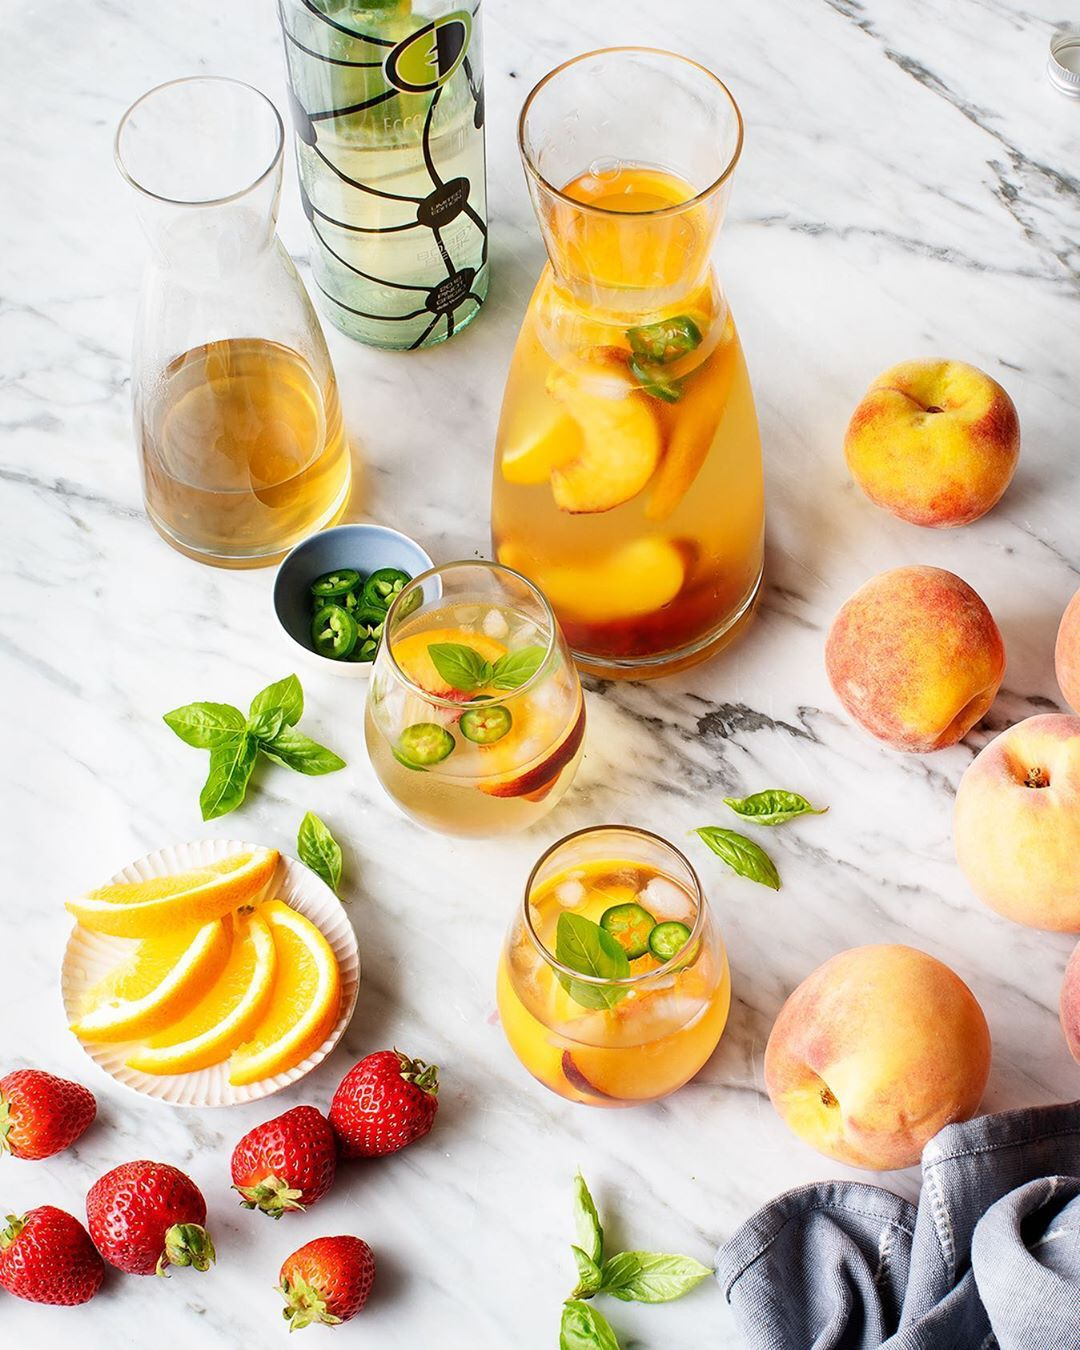 If live gives you bad wine, make sangria!⁣ ⁣-⁣ ⁣Food Styling: @loveandlemons⁣ ⁣⁣ ⁣⁣ ⁣#eccodomani #sipboldly #happyhour #cocktail#drinks#drink #thirsty #mixology#cocktails #sangria #peach #raspberry #summer #summerdrinks #peachsangria #strawberrysangria #rosesangria #sangriarecipe #pinterestrecipe #pinterest % #pinterestrecipe